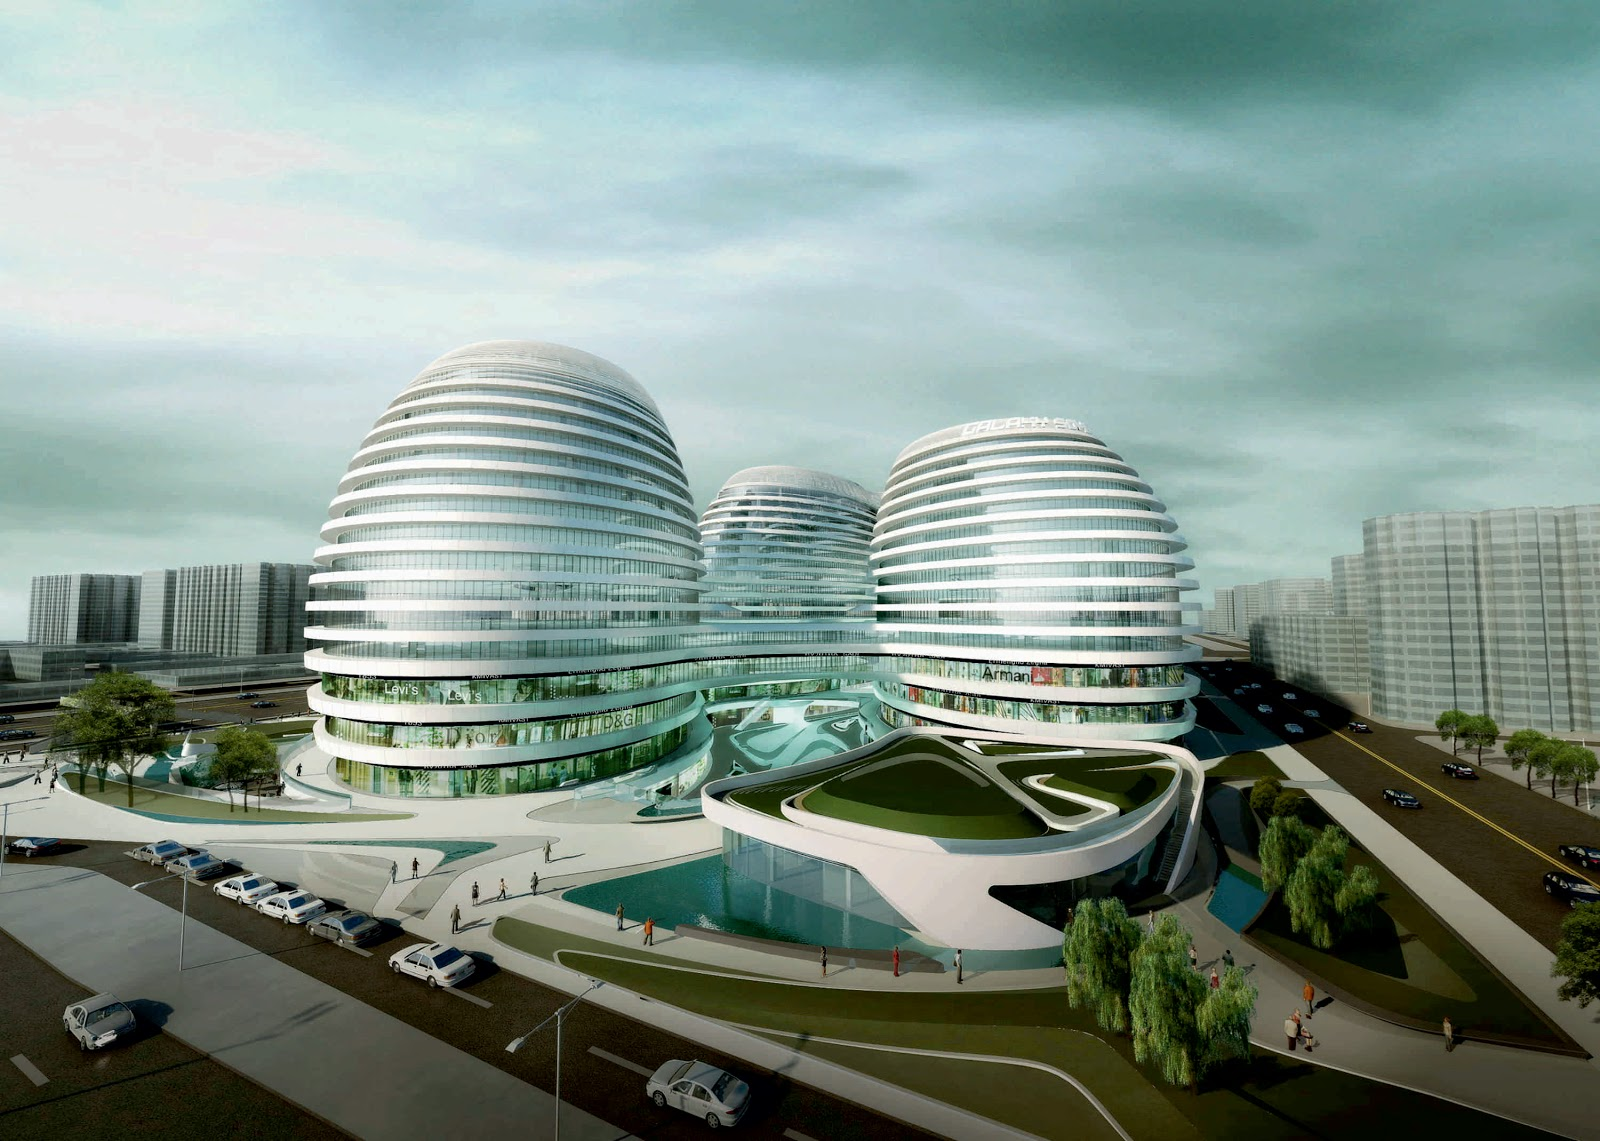 Galaxy Soho by Zaha Hadid Architects 12